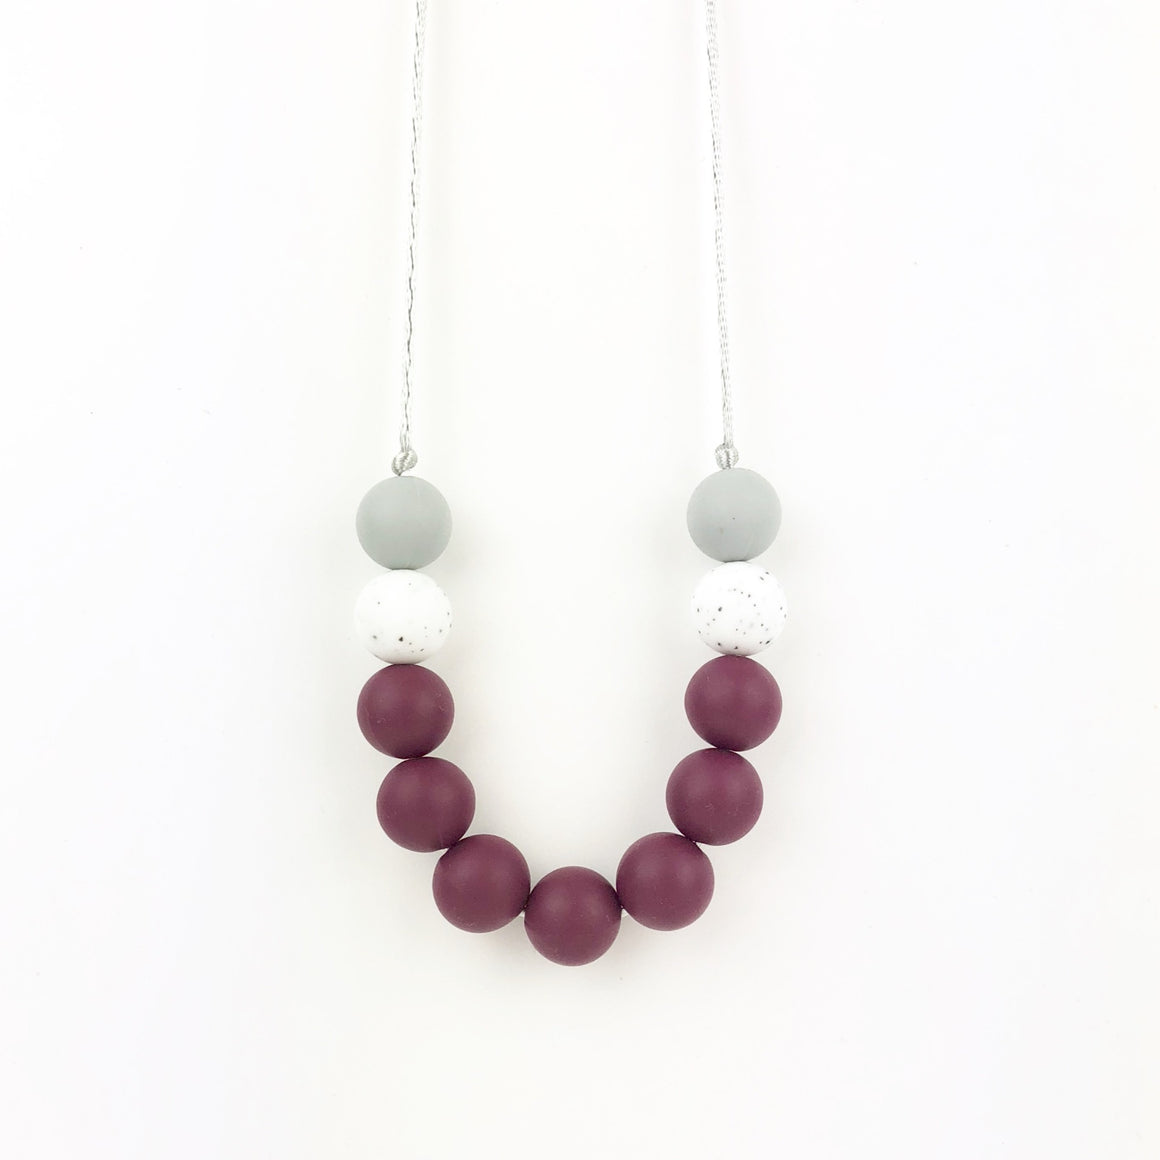 Sydney Wine Teething Necklace - Sebandroo